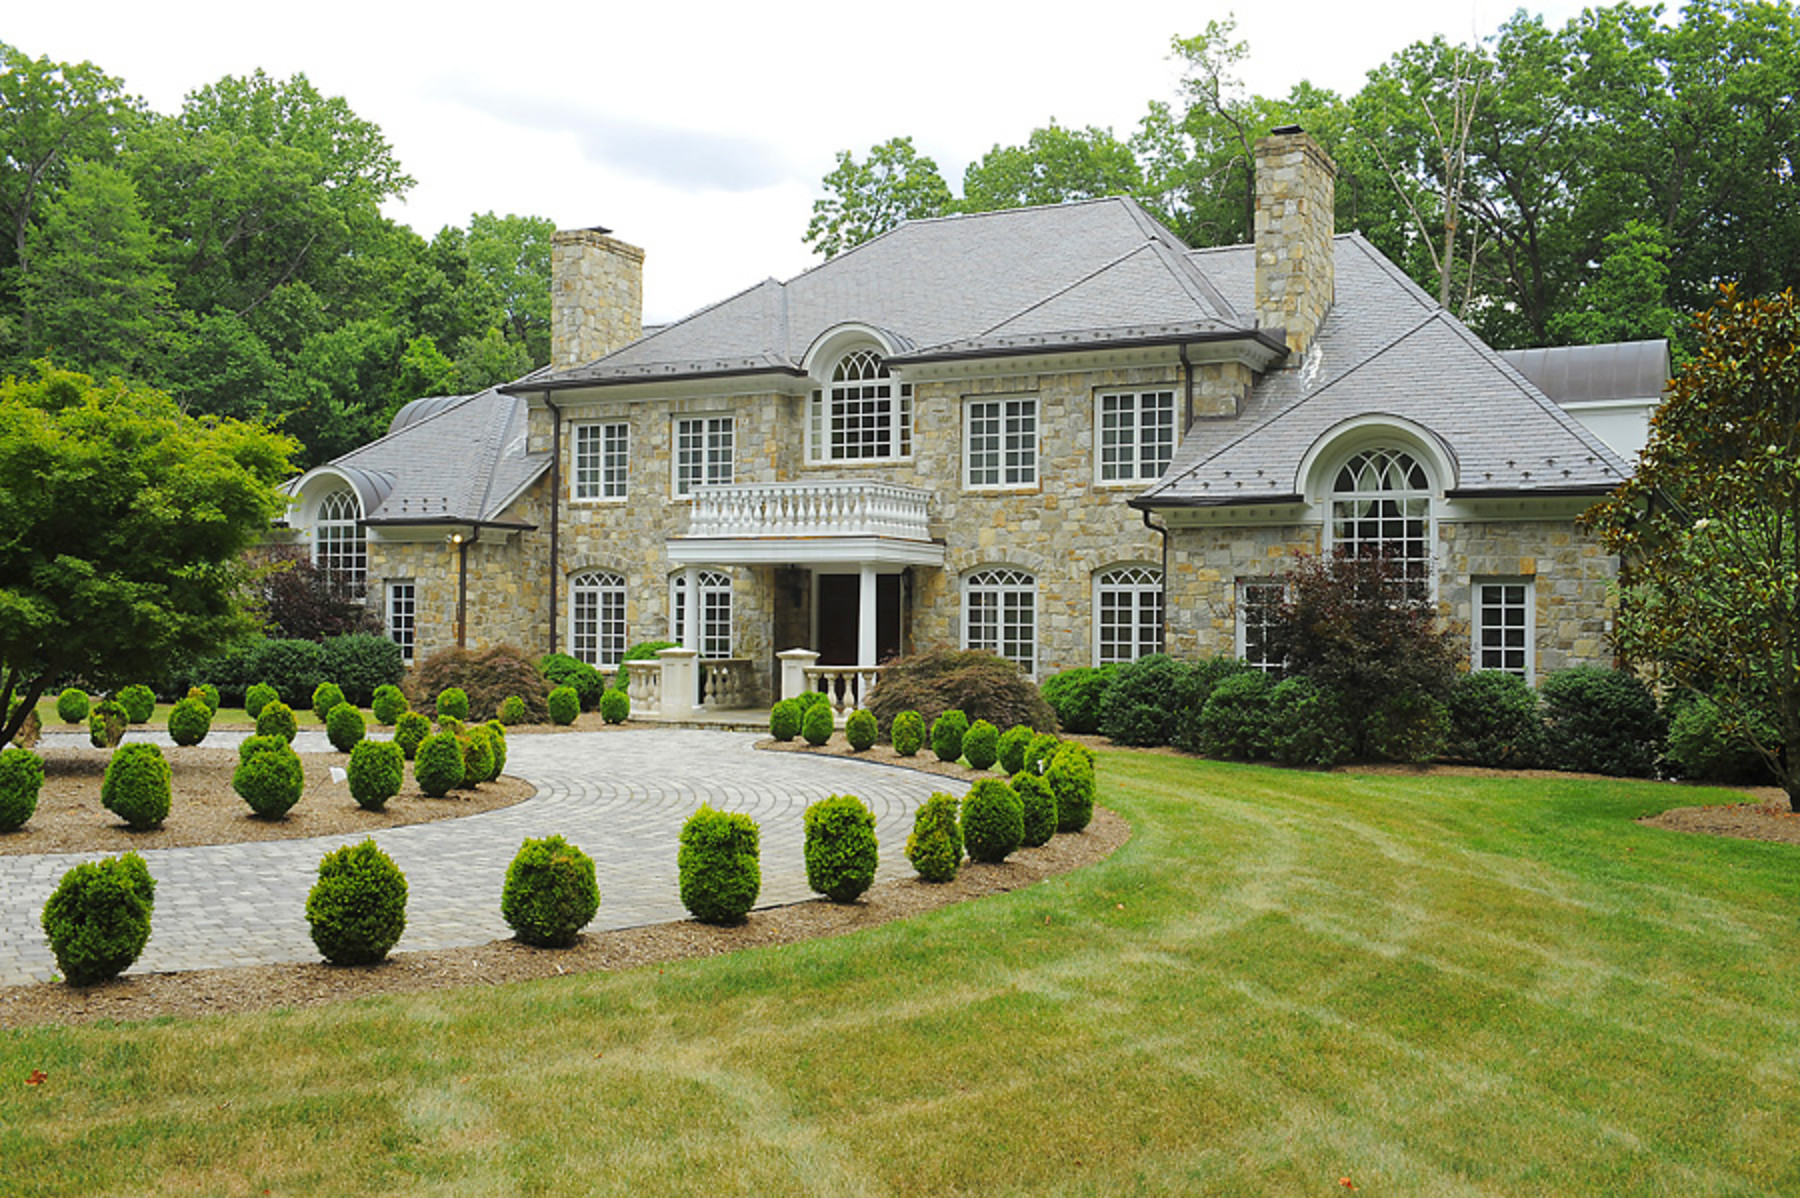 Single Family Home for Sale at 7712 Georgetown Pike, McLean McLean, Virginia 22102 United States